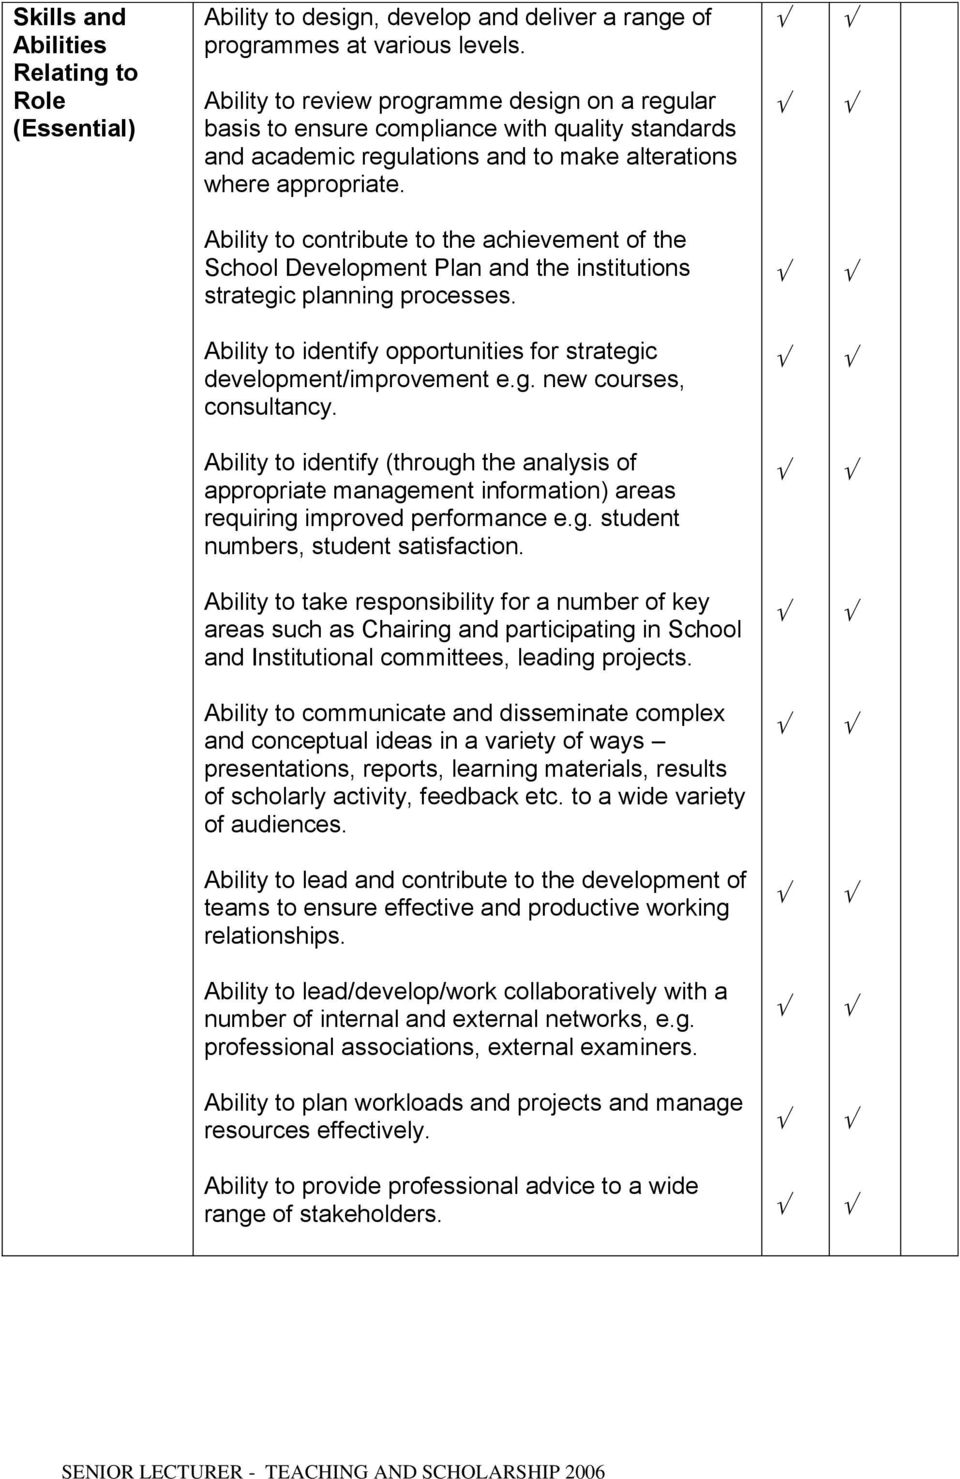 Ability to contribute to the achievement of the School Development Plan and the institutions strategic planning processes. Ability to identify opportunities for strategic development/improvement e.g. new courses, consultancy.